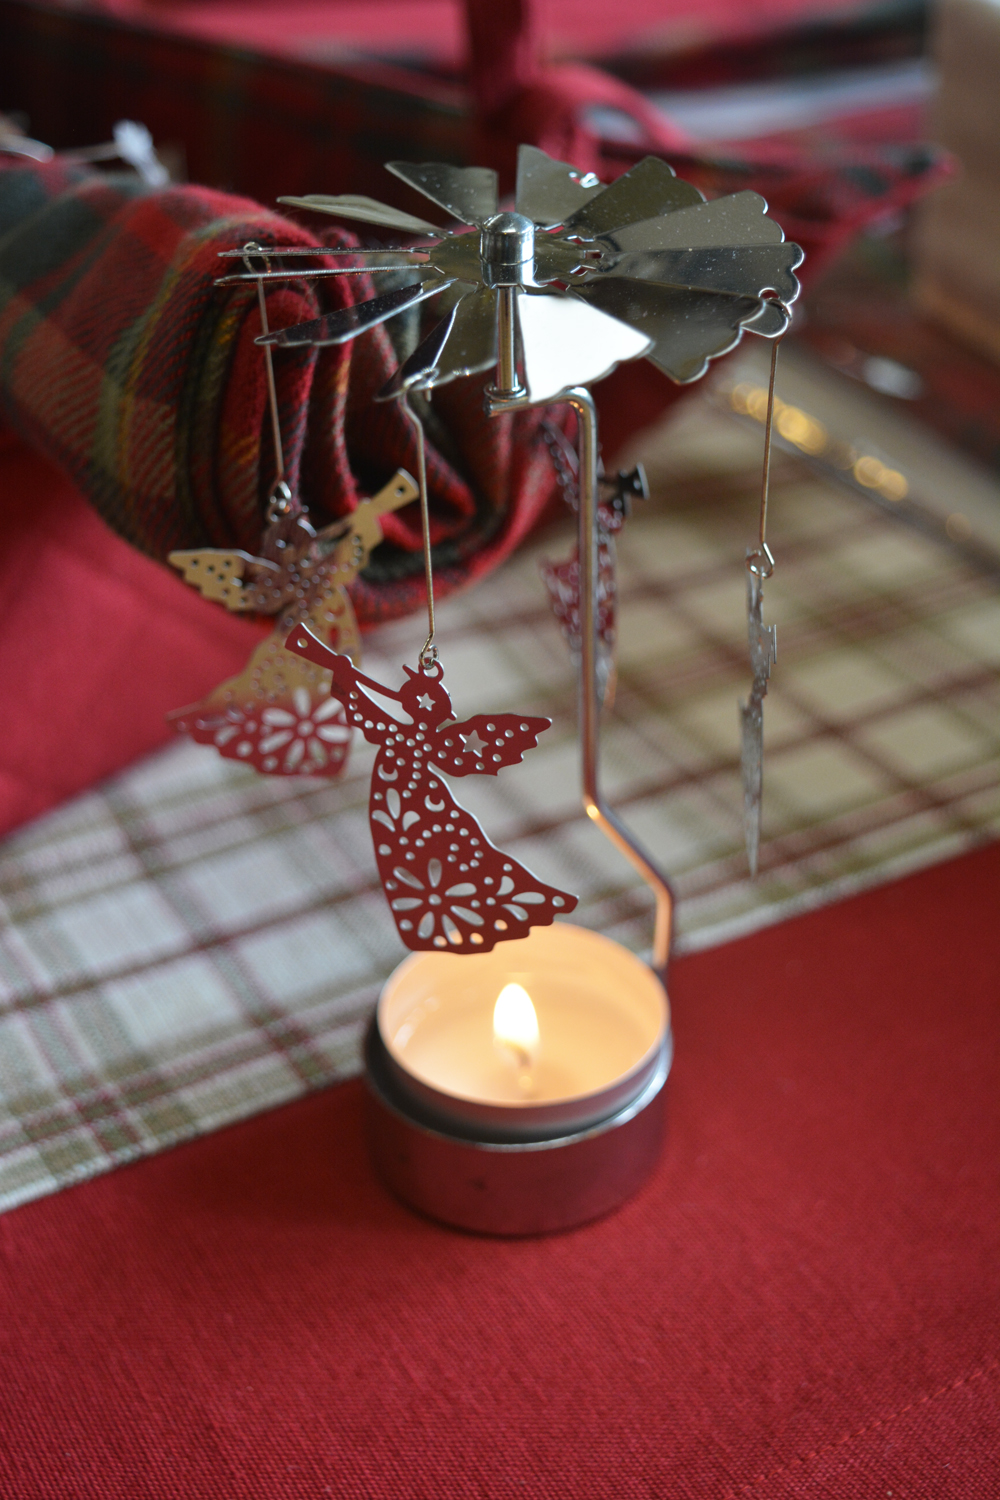 Heat Activated Spinning Angel Candle Holder €9.00